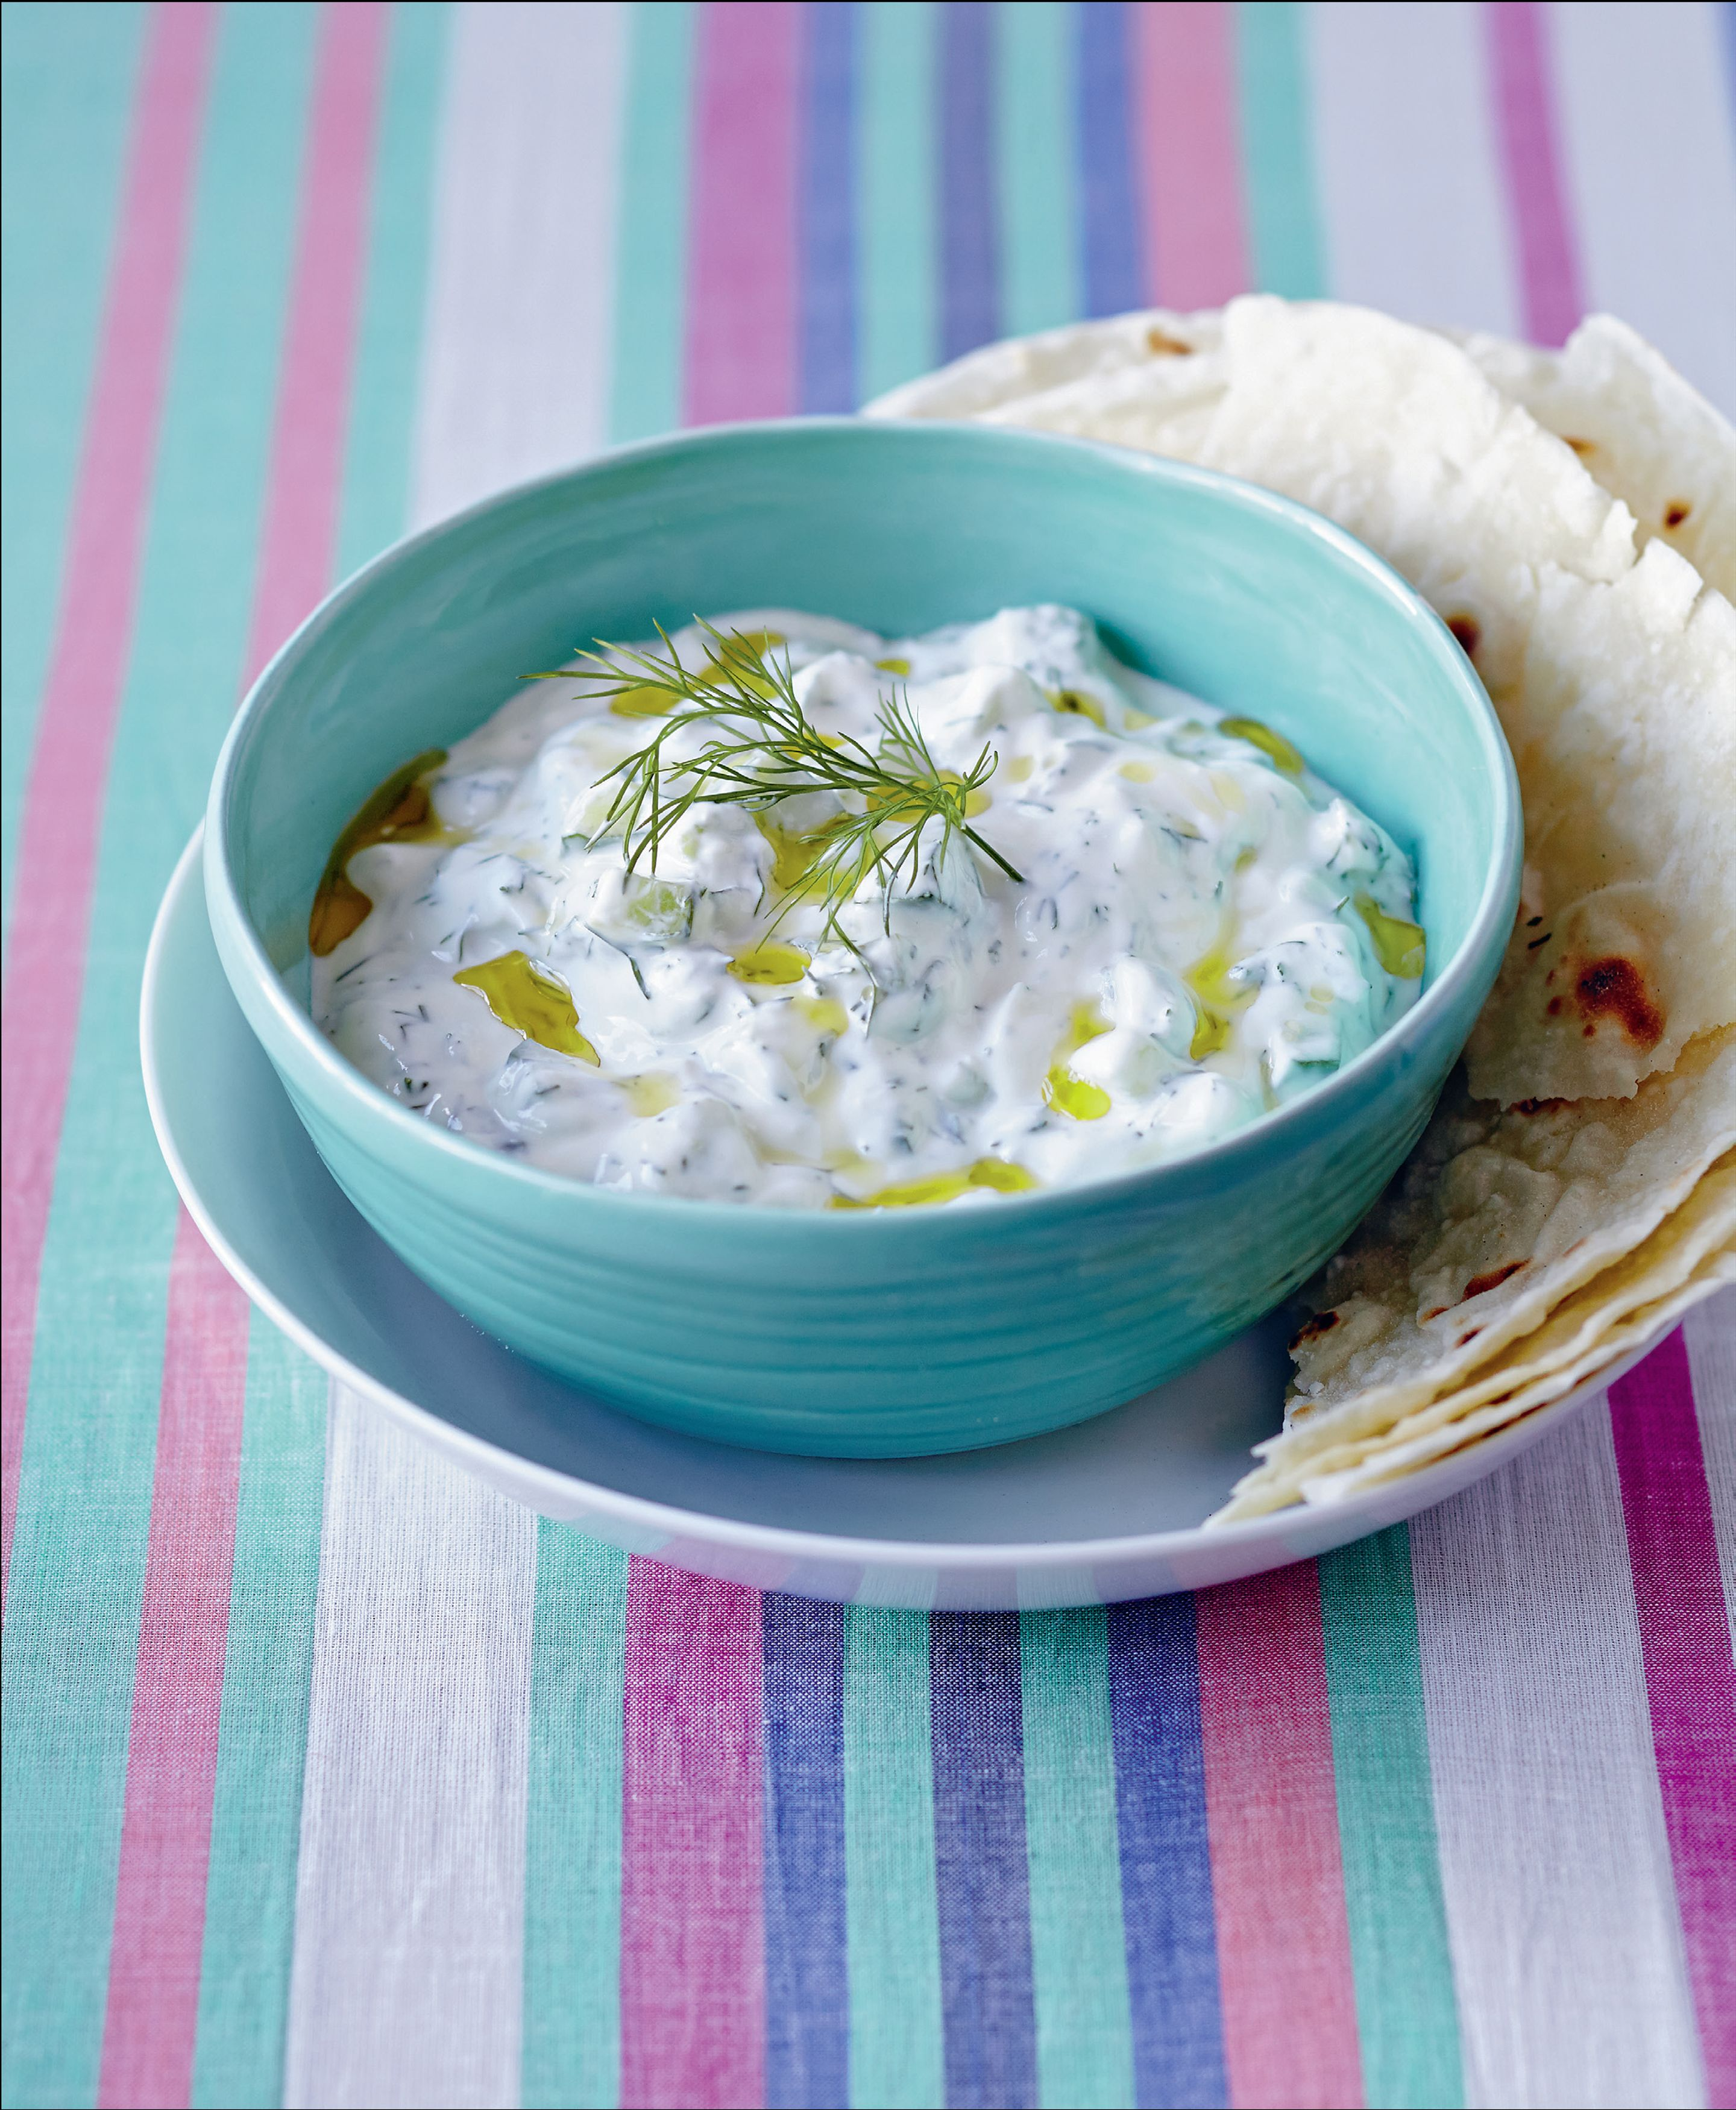 Mint & garlic yoghurt dip